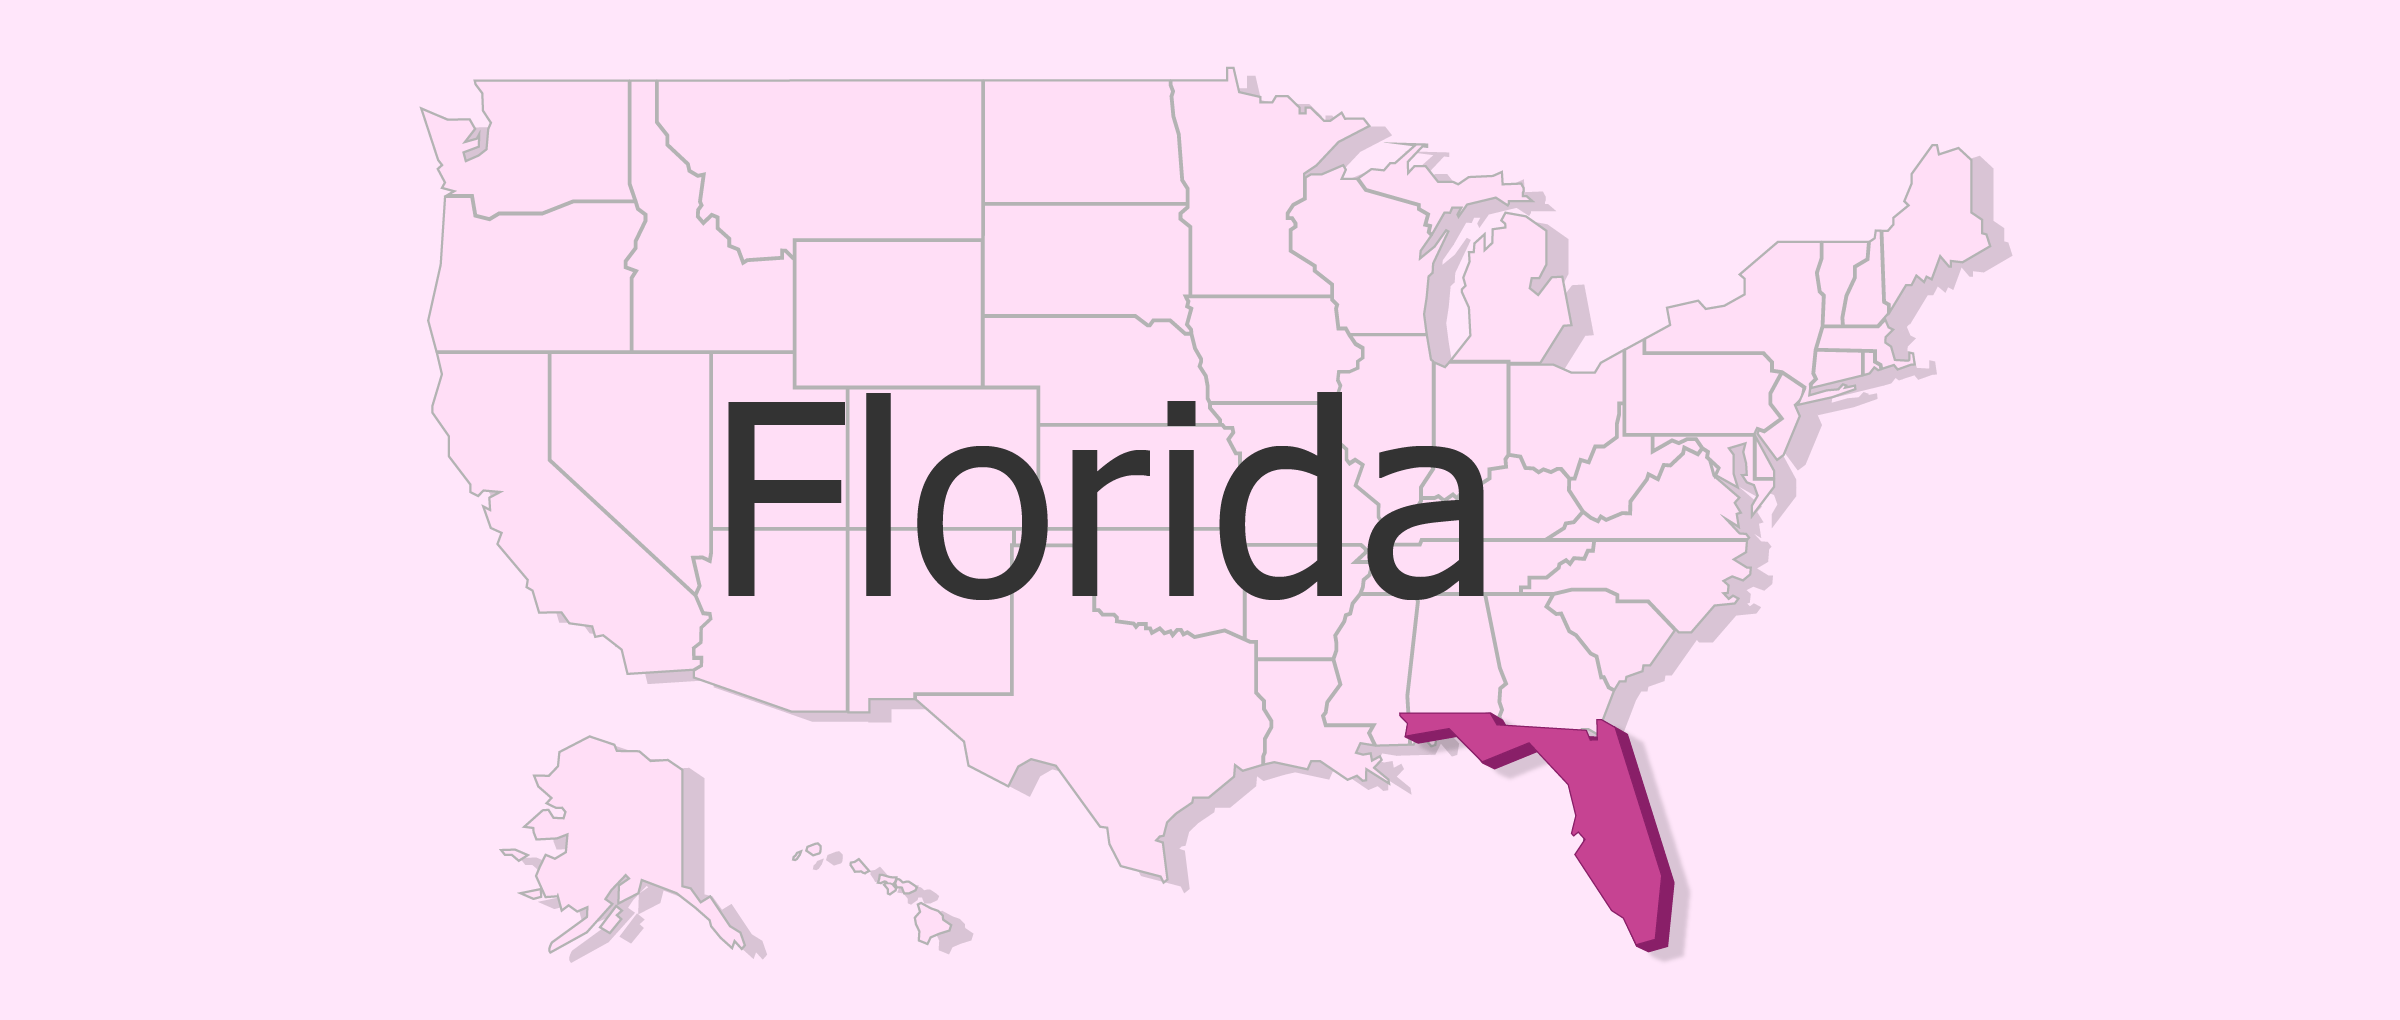 Leihmutterschaft in Florida